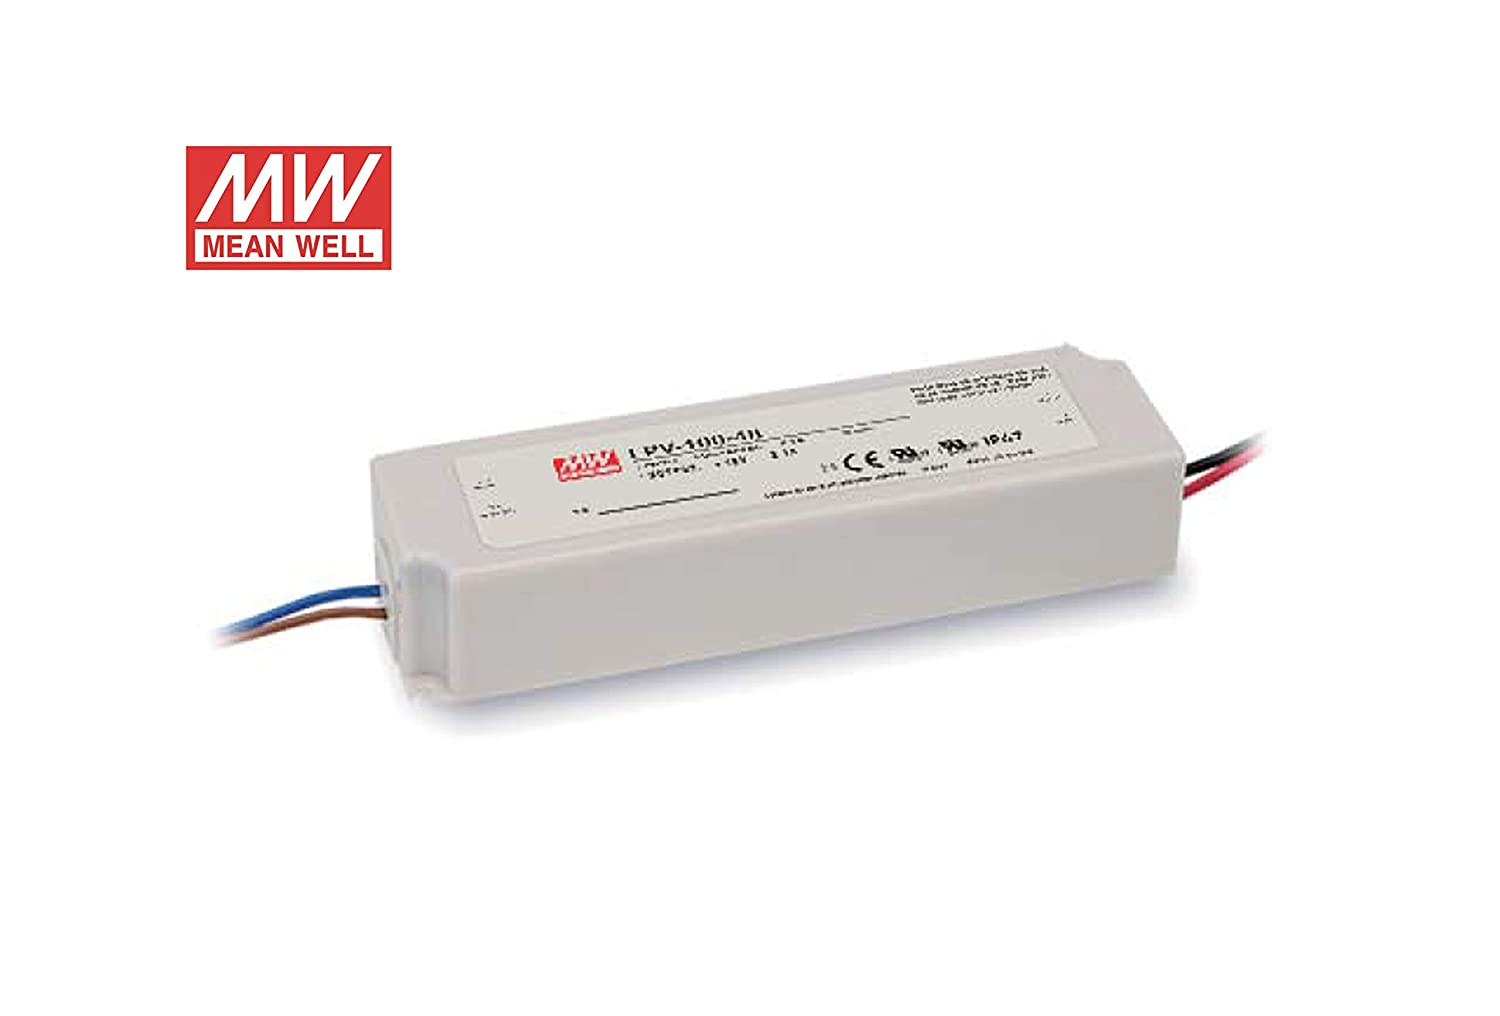 Mean Well alimentation Mean Well 150 W 12 V, lpv-150 – 12 à tension constante Idéal pour bandes lED, dimensions : 191 x 63 x 37,5 mm